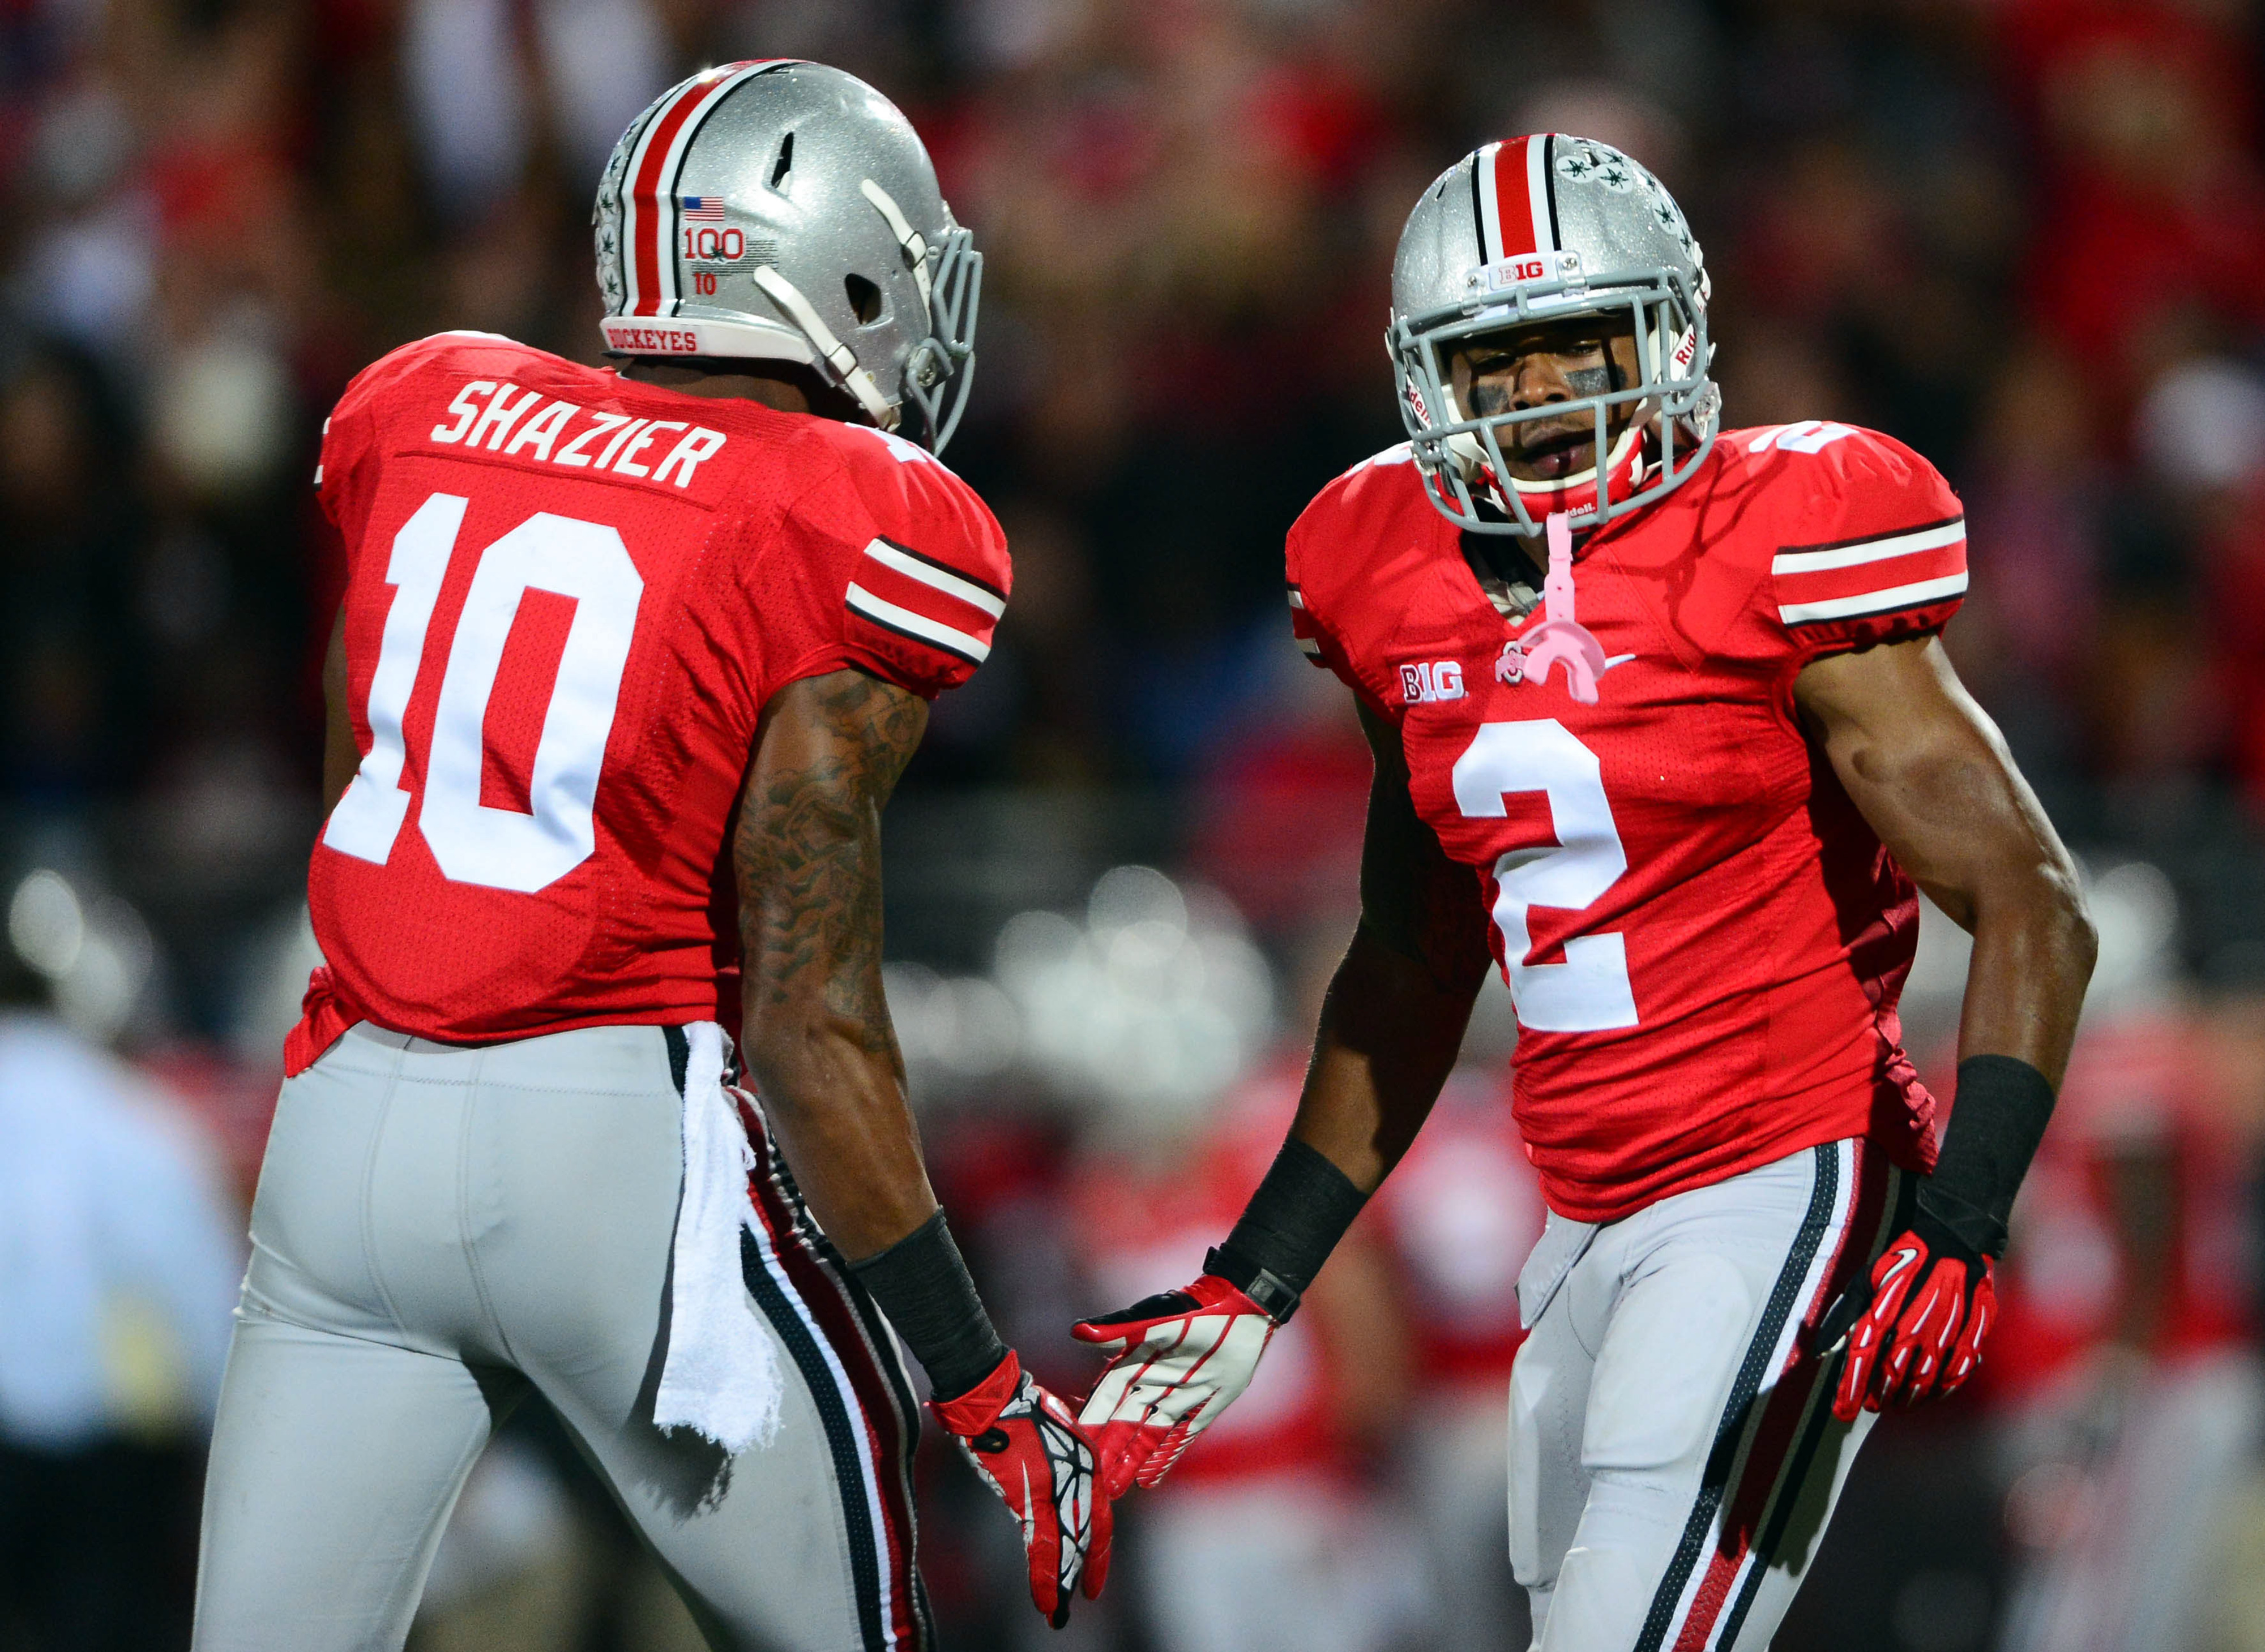 Ohio State players want to be 'the team that ends' SEC streak